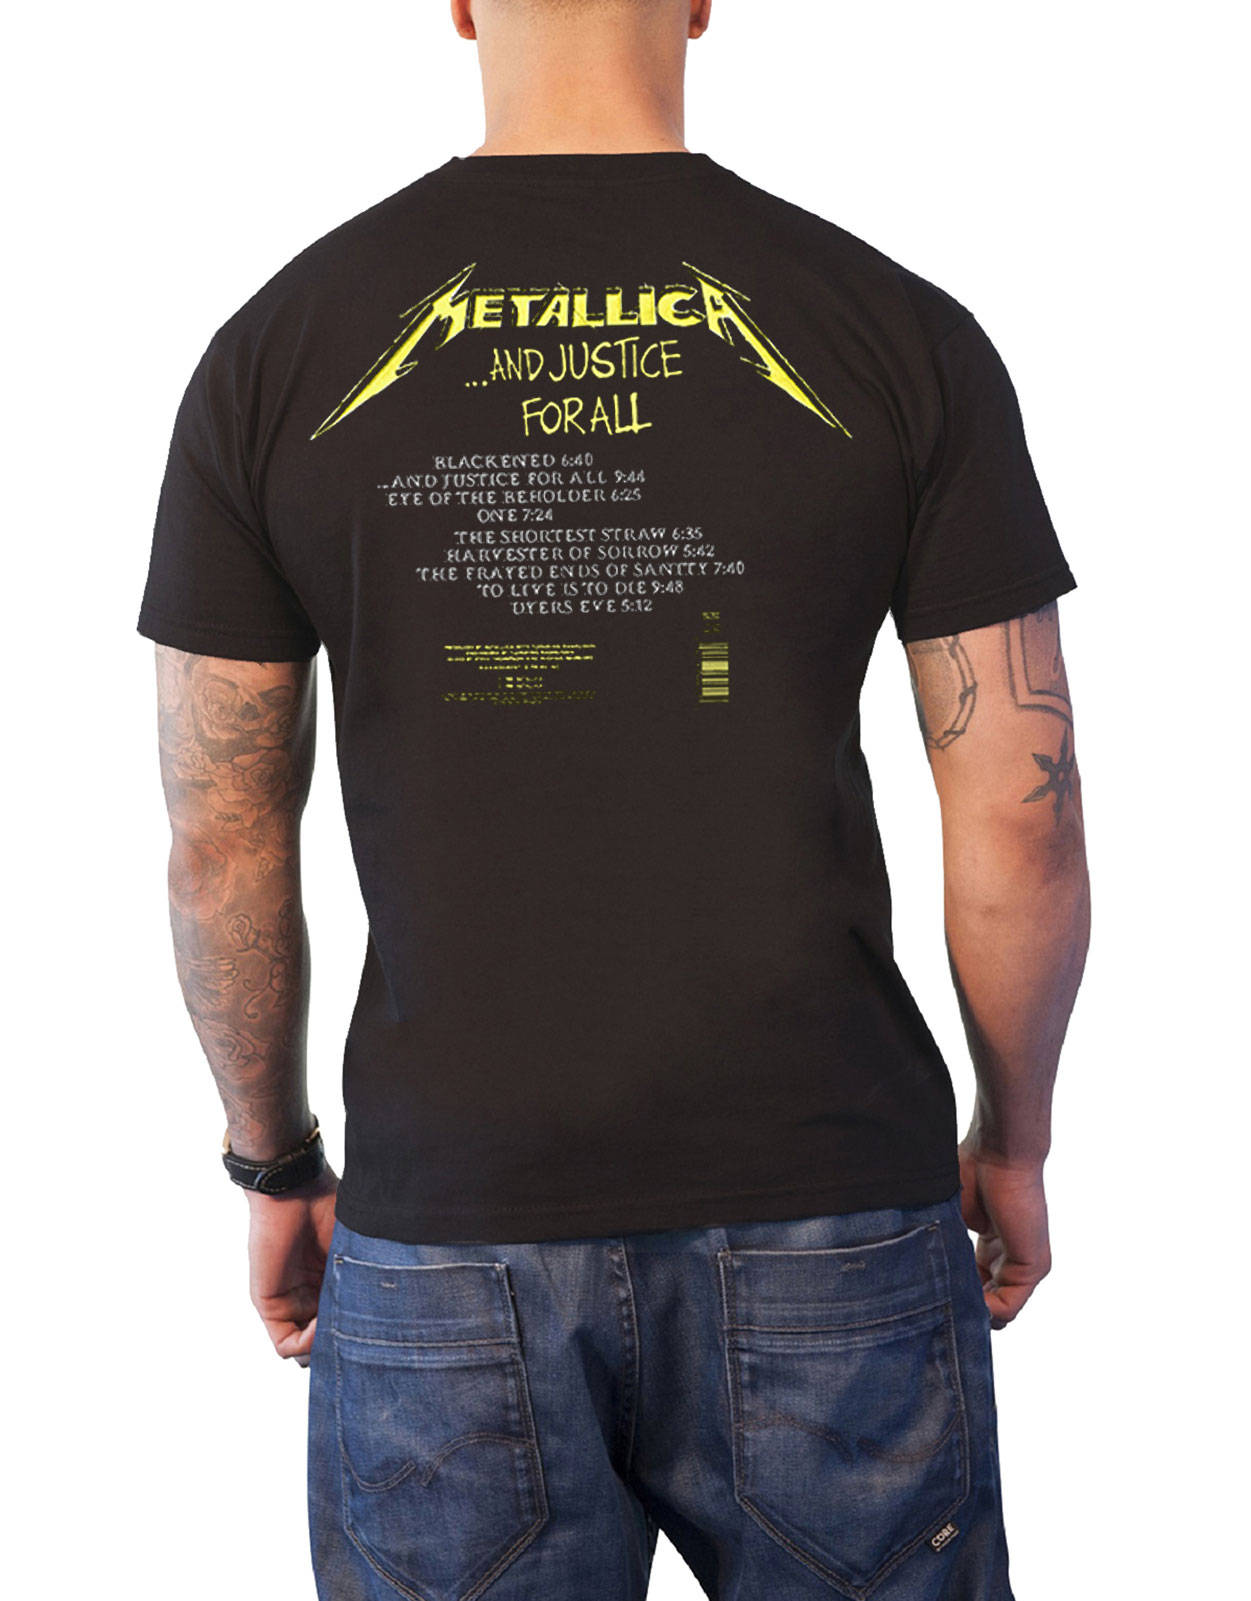 Official-Metallica-T-Shirt-Hardwired-Justice-for-all-RTL-band-logo-mens-new Indexbild 57